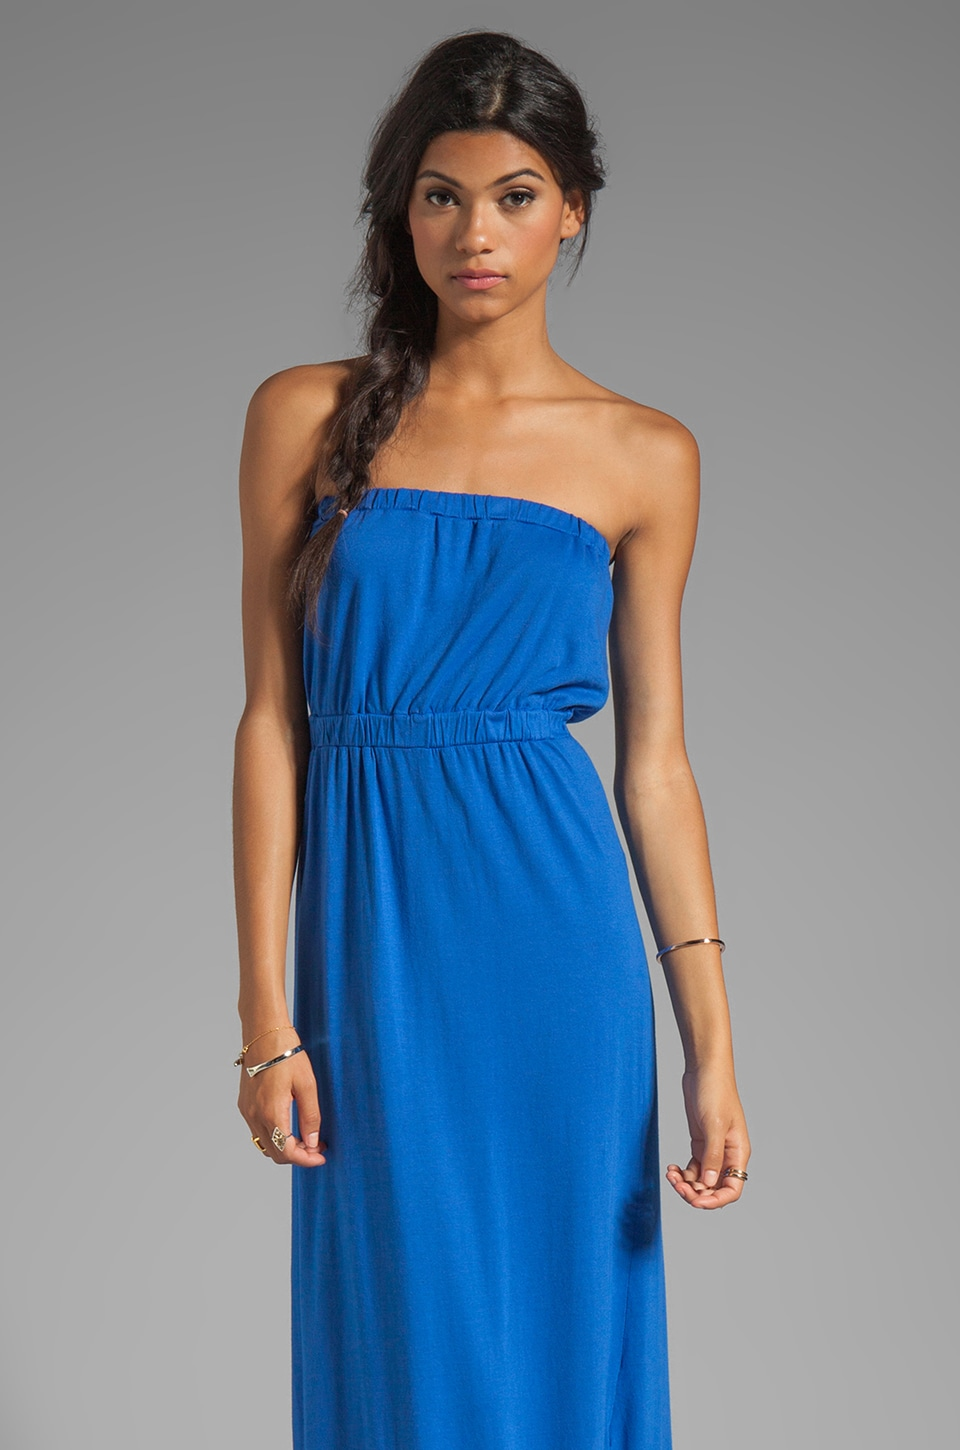 Soft Joie Cade Strapless Jersey Dress in Mazarine Blue